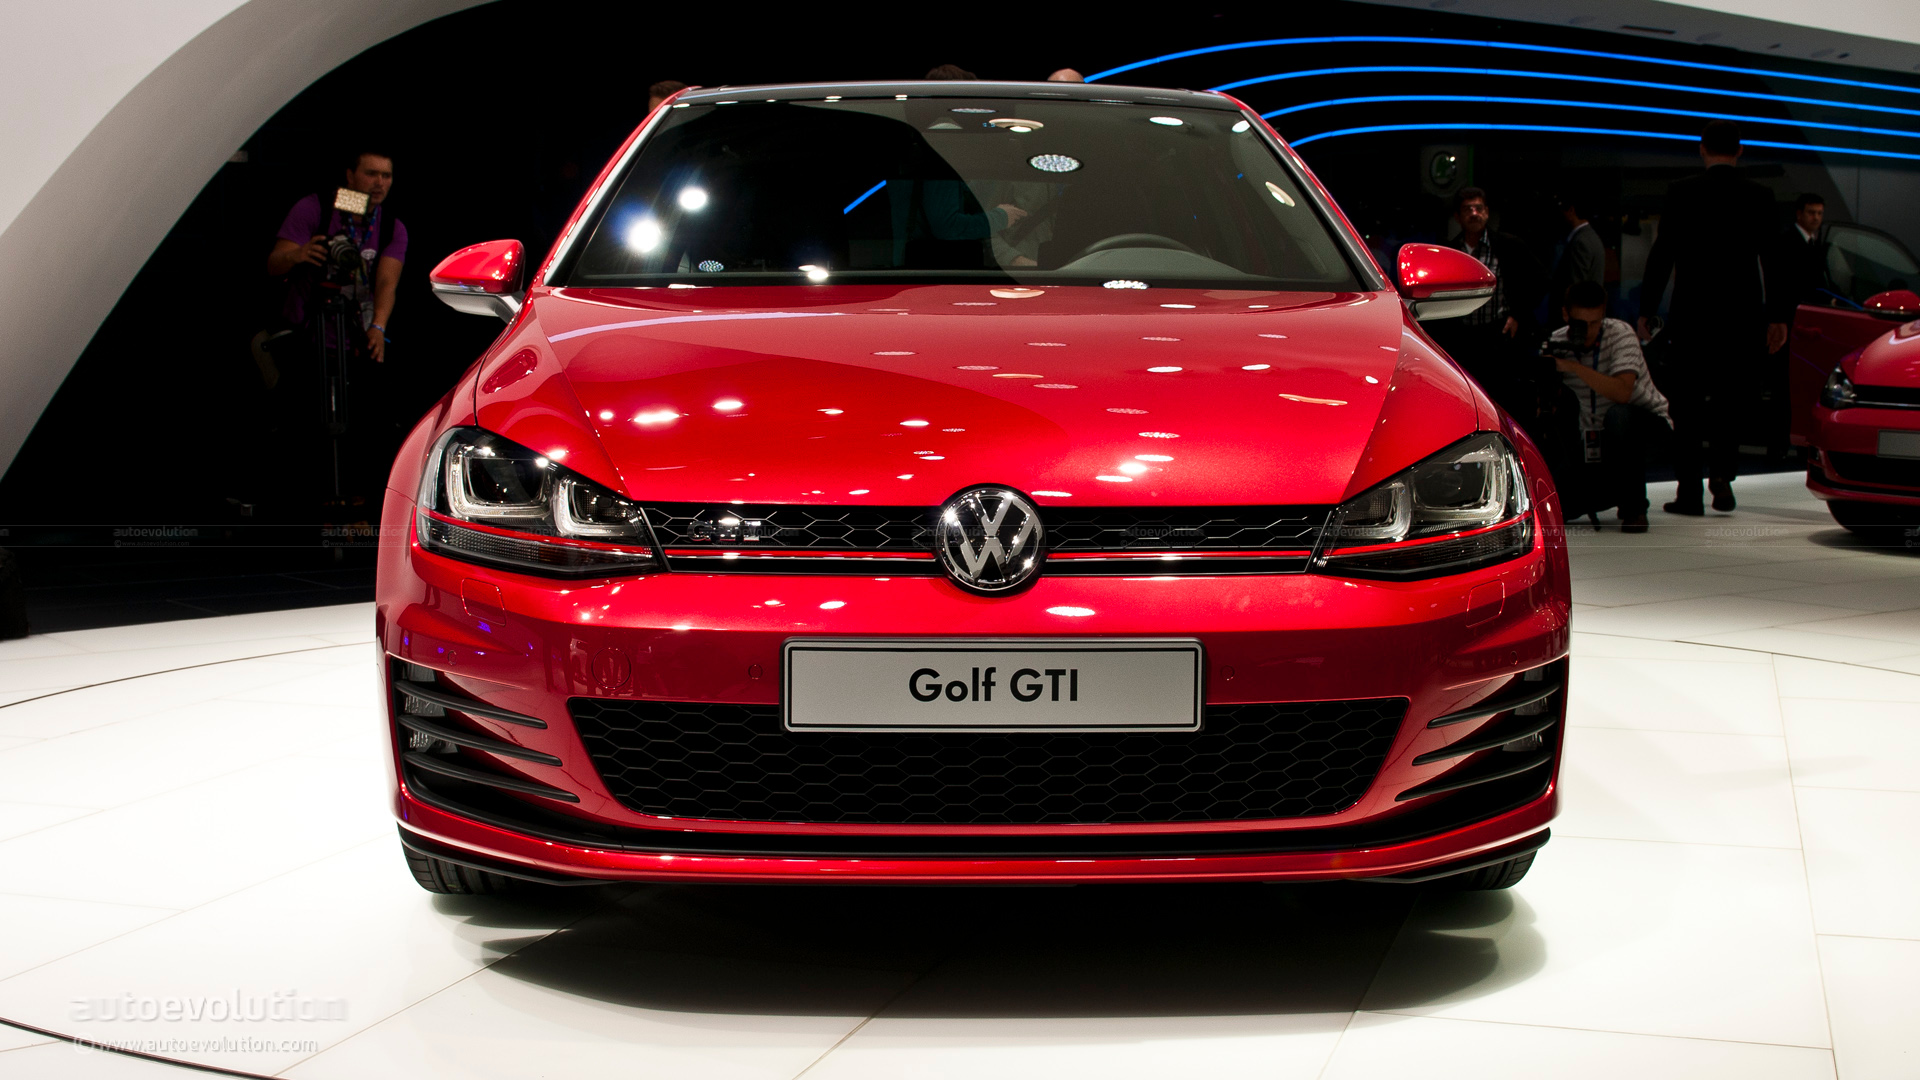 paris 2012 volkswagen golf vii gti concept live photos autoevolution. Black Bedroom Furniture Sets. Home Design Ideas